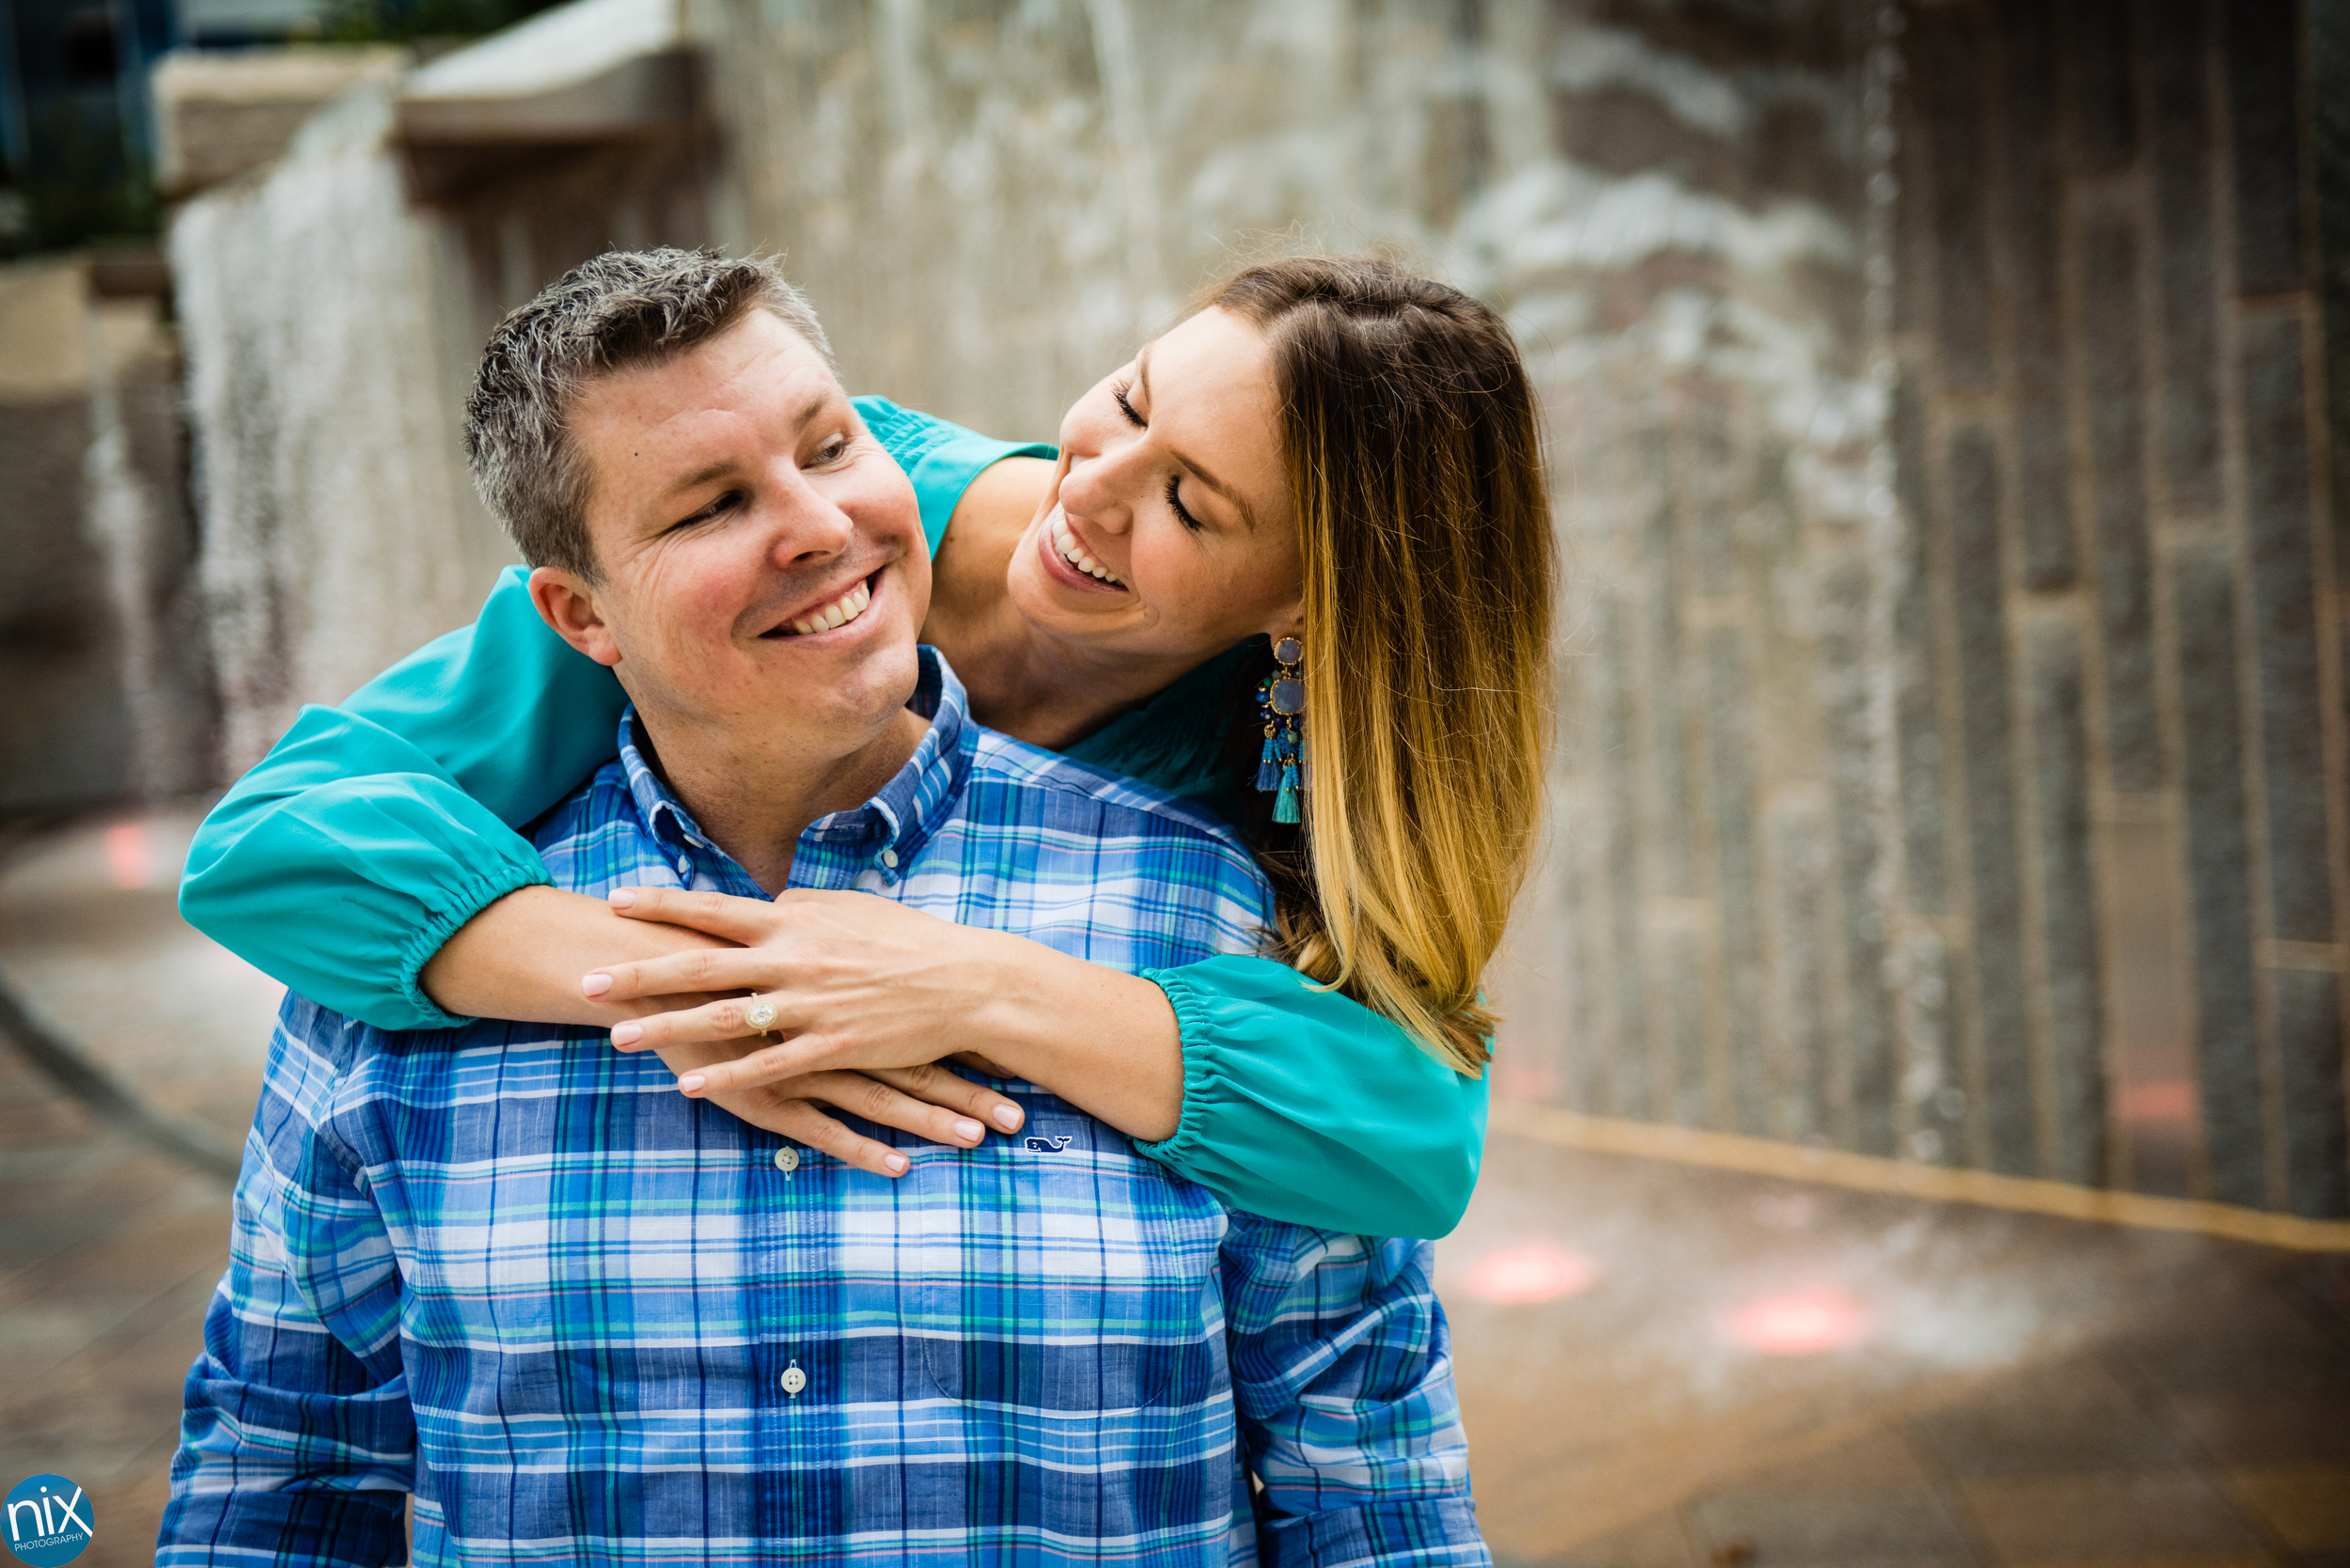 charlotte engagement at romare beardon park waterfall color.jpg